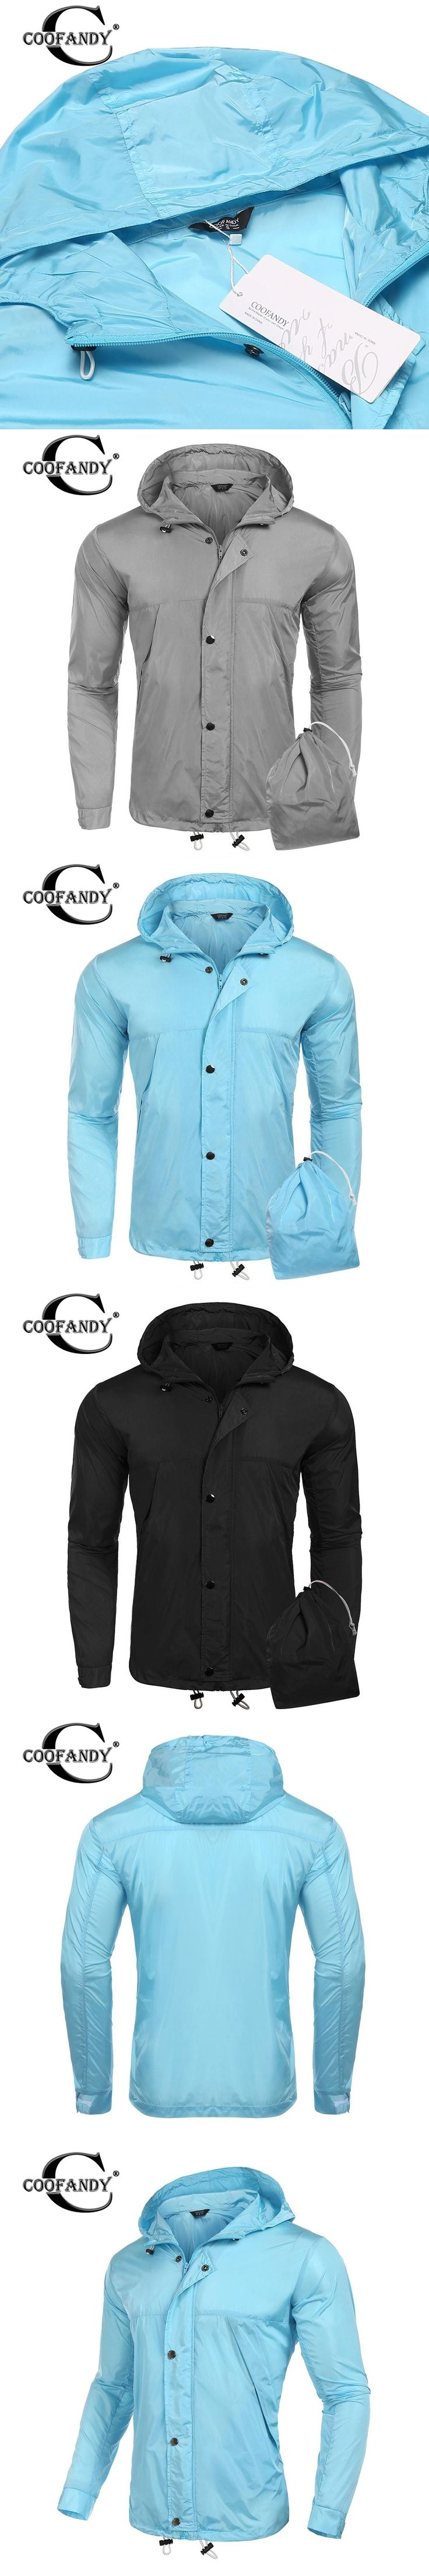 COOFANDY New Arrivals Fashionable Jackets for Men Hooded Long Sleeve Zip-up Lightweight Rain Jacket Raincoat